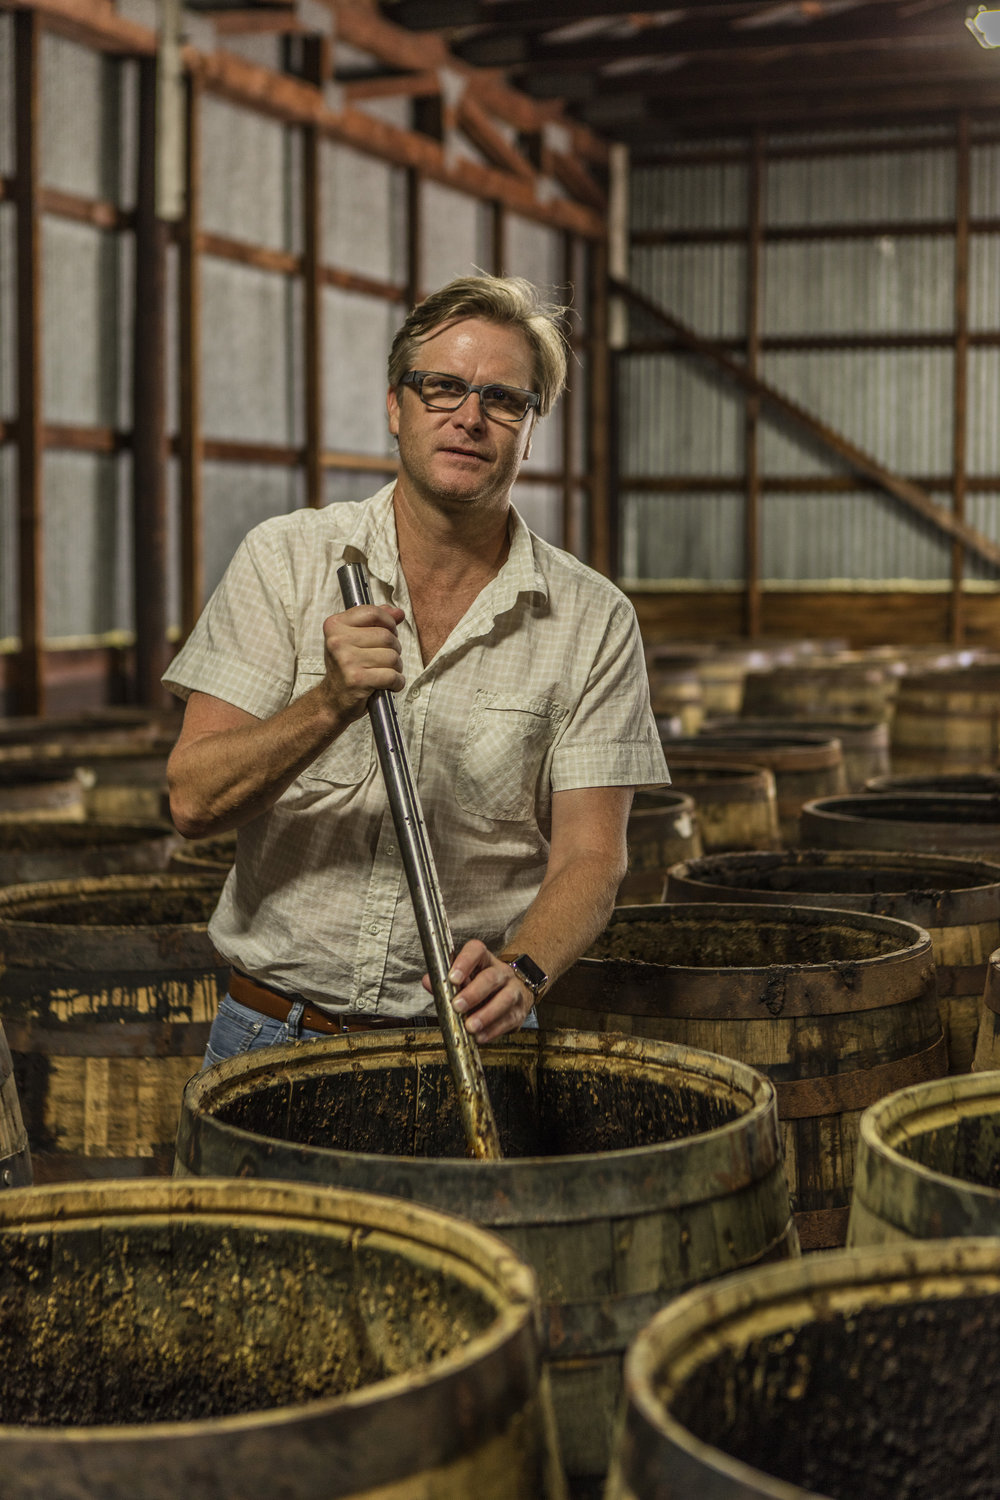 Meet the Maker: Bourbon Barrel Foods